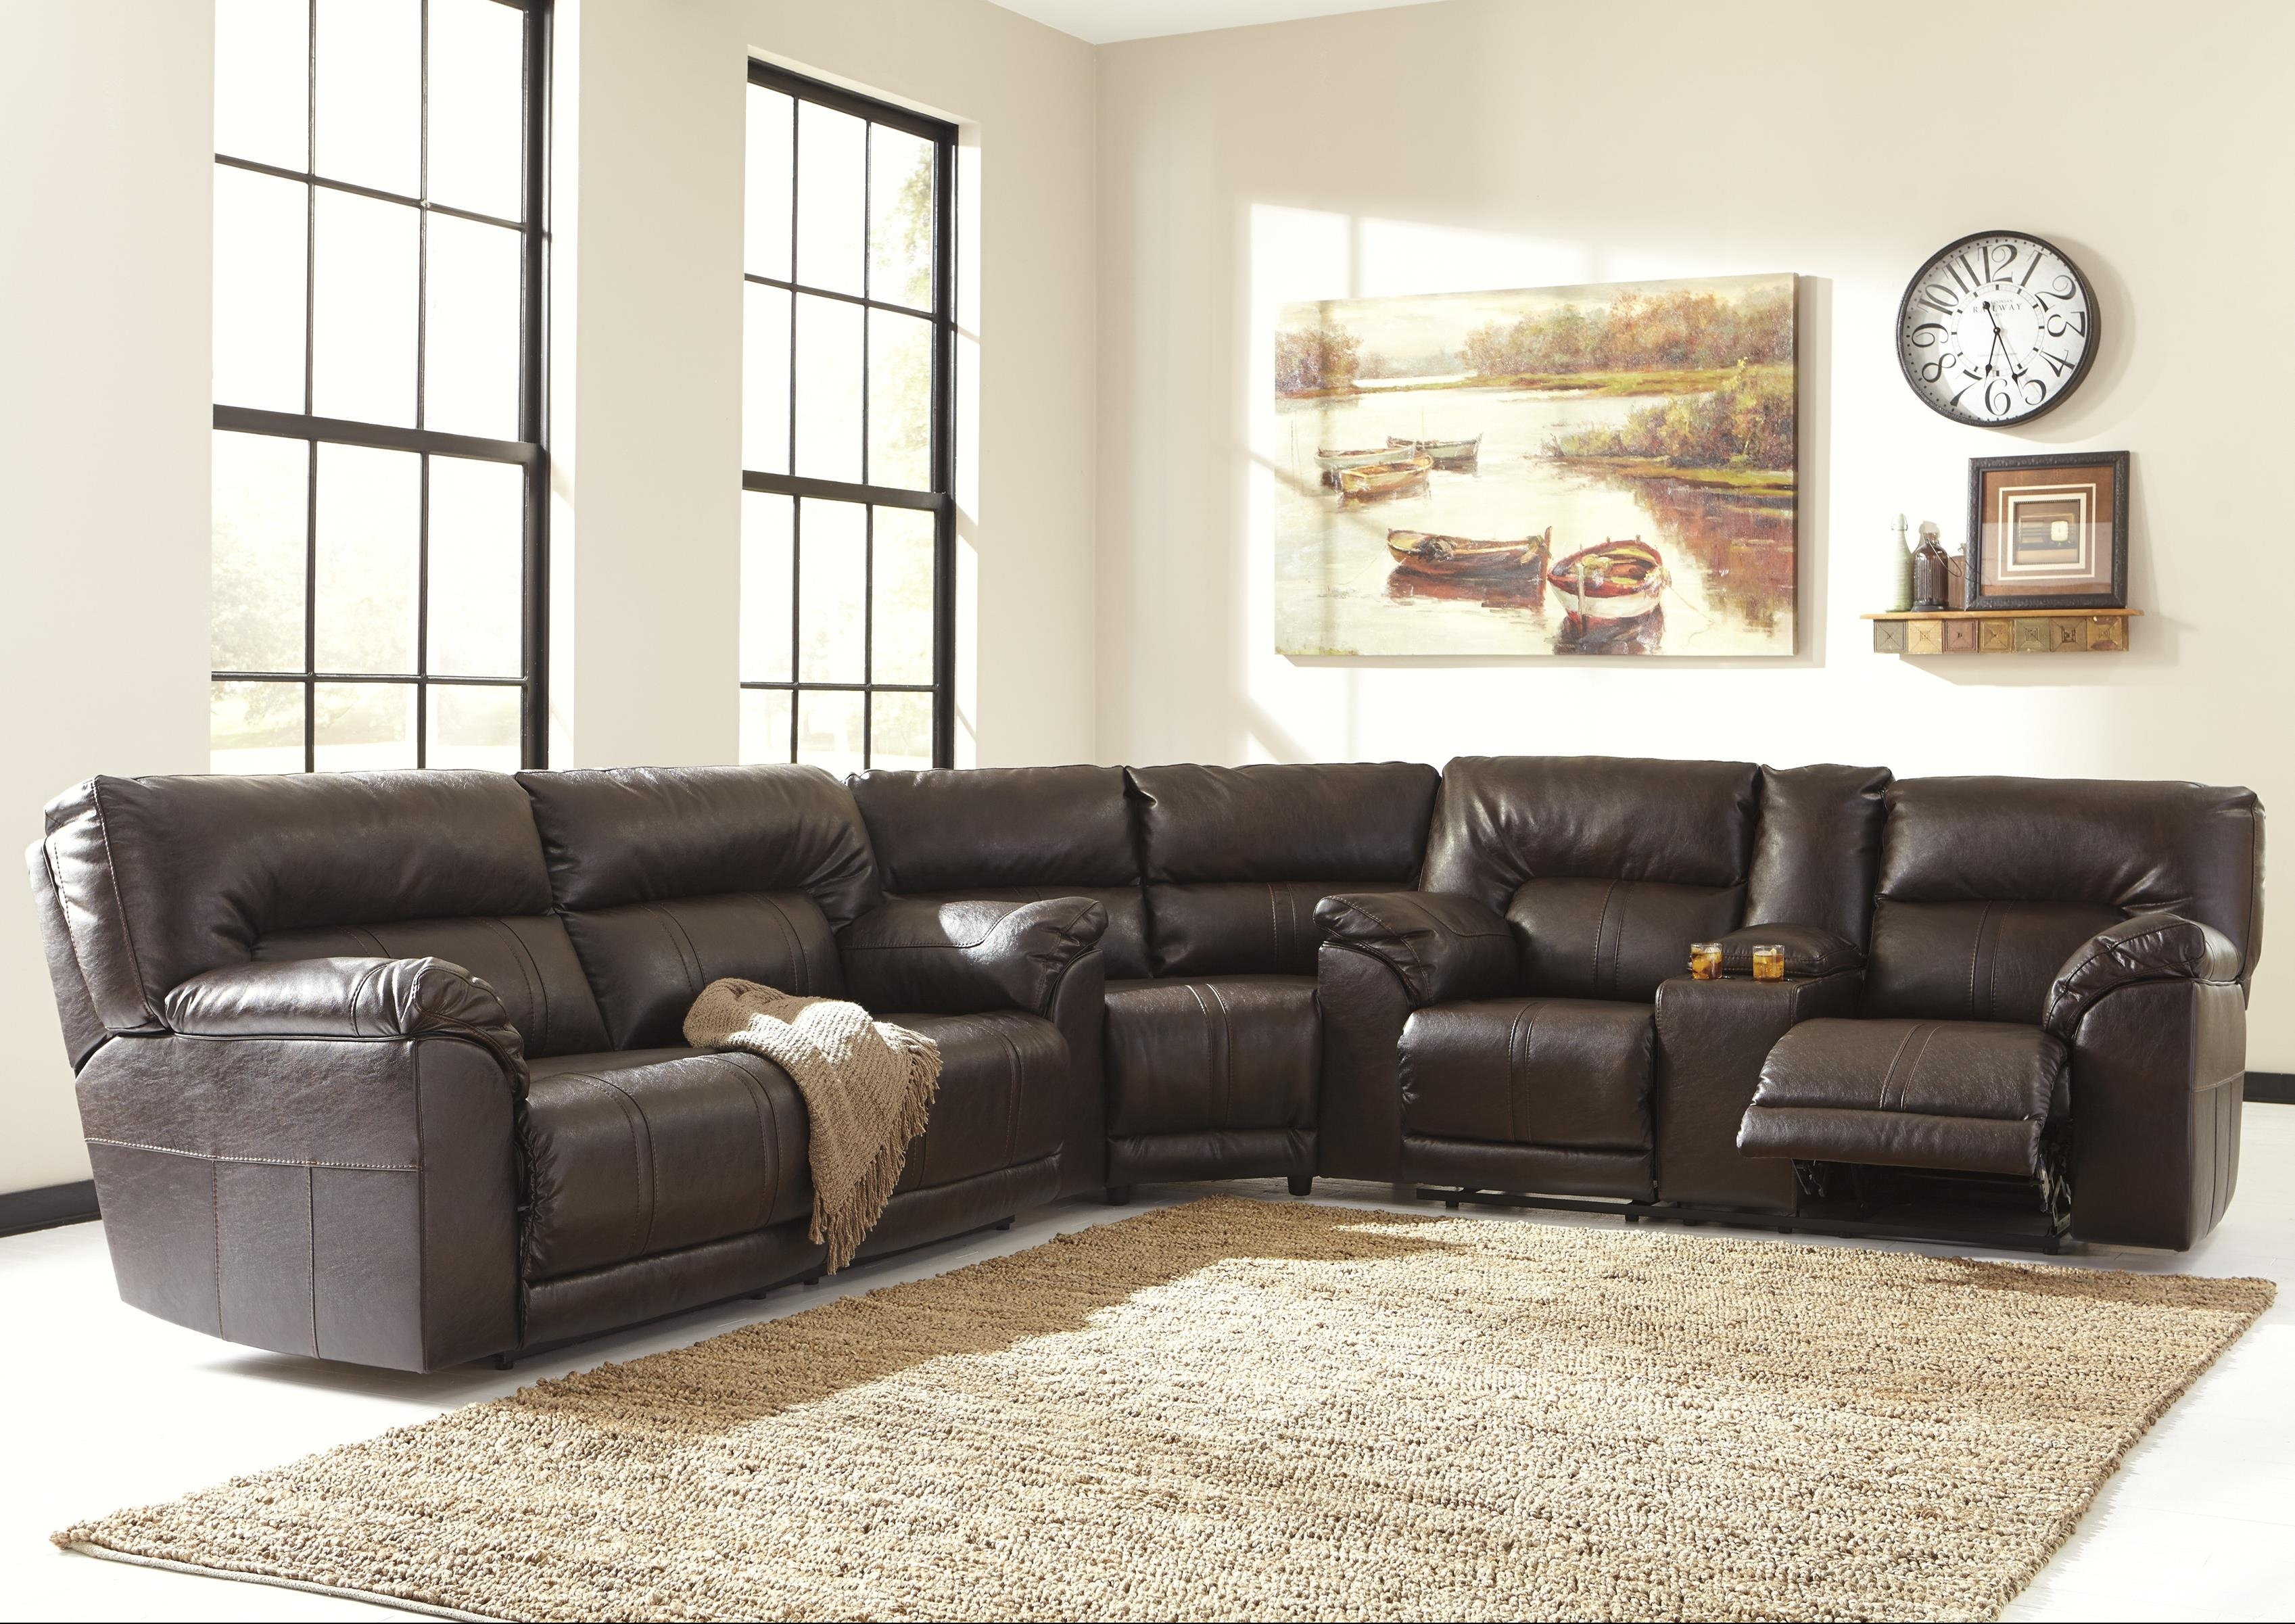 sofas birmingham huntington house 7100 contemporary sectional sofa with accent pillows 10 best ideas at al